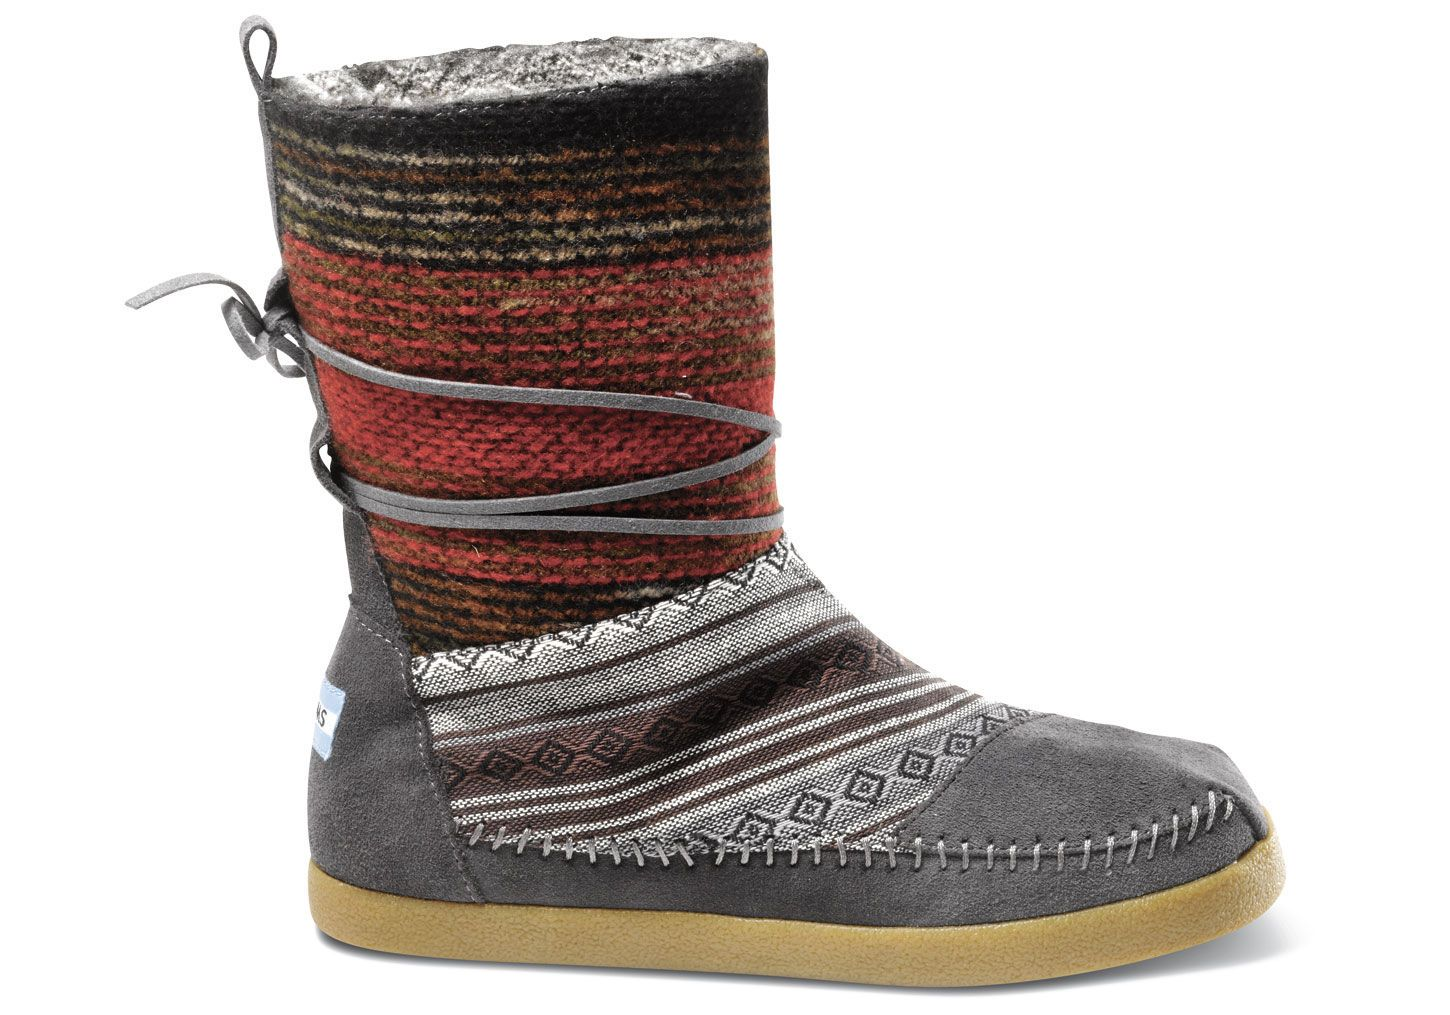 5526b080f37 My love for boots - TOMS - Mixed Woven Women s Nepal Boots